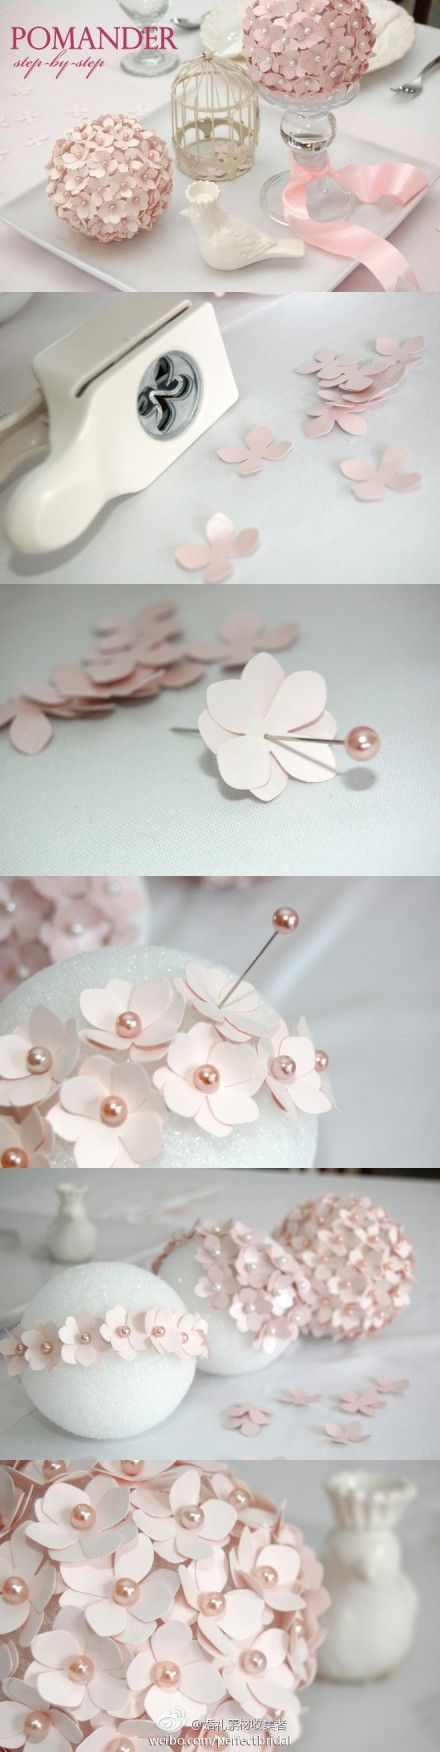 Paper flower stamp-it Pomander step-by-step